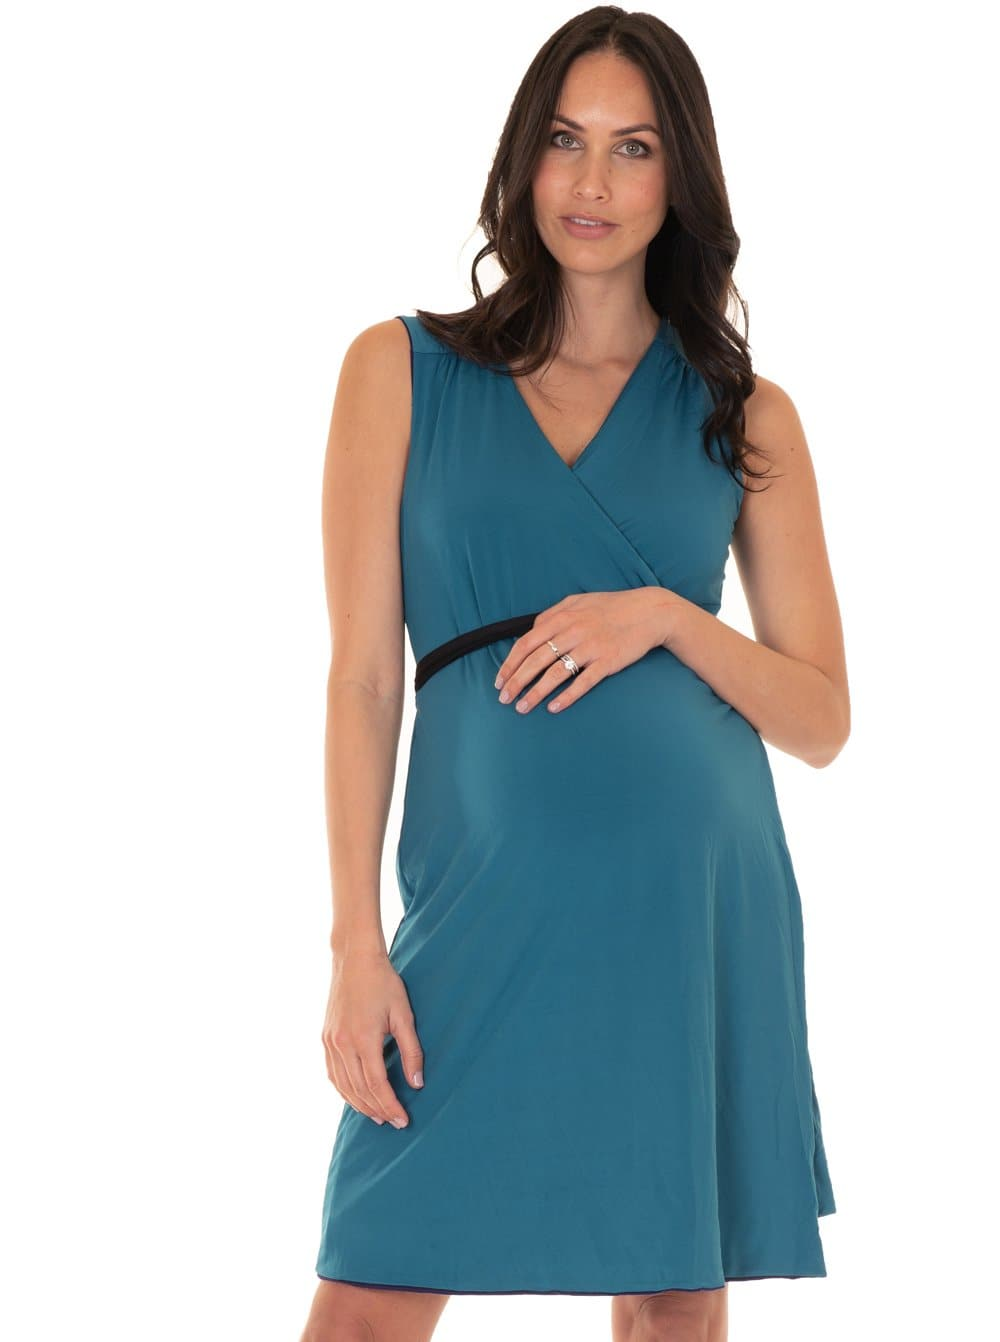 teal maternity dress